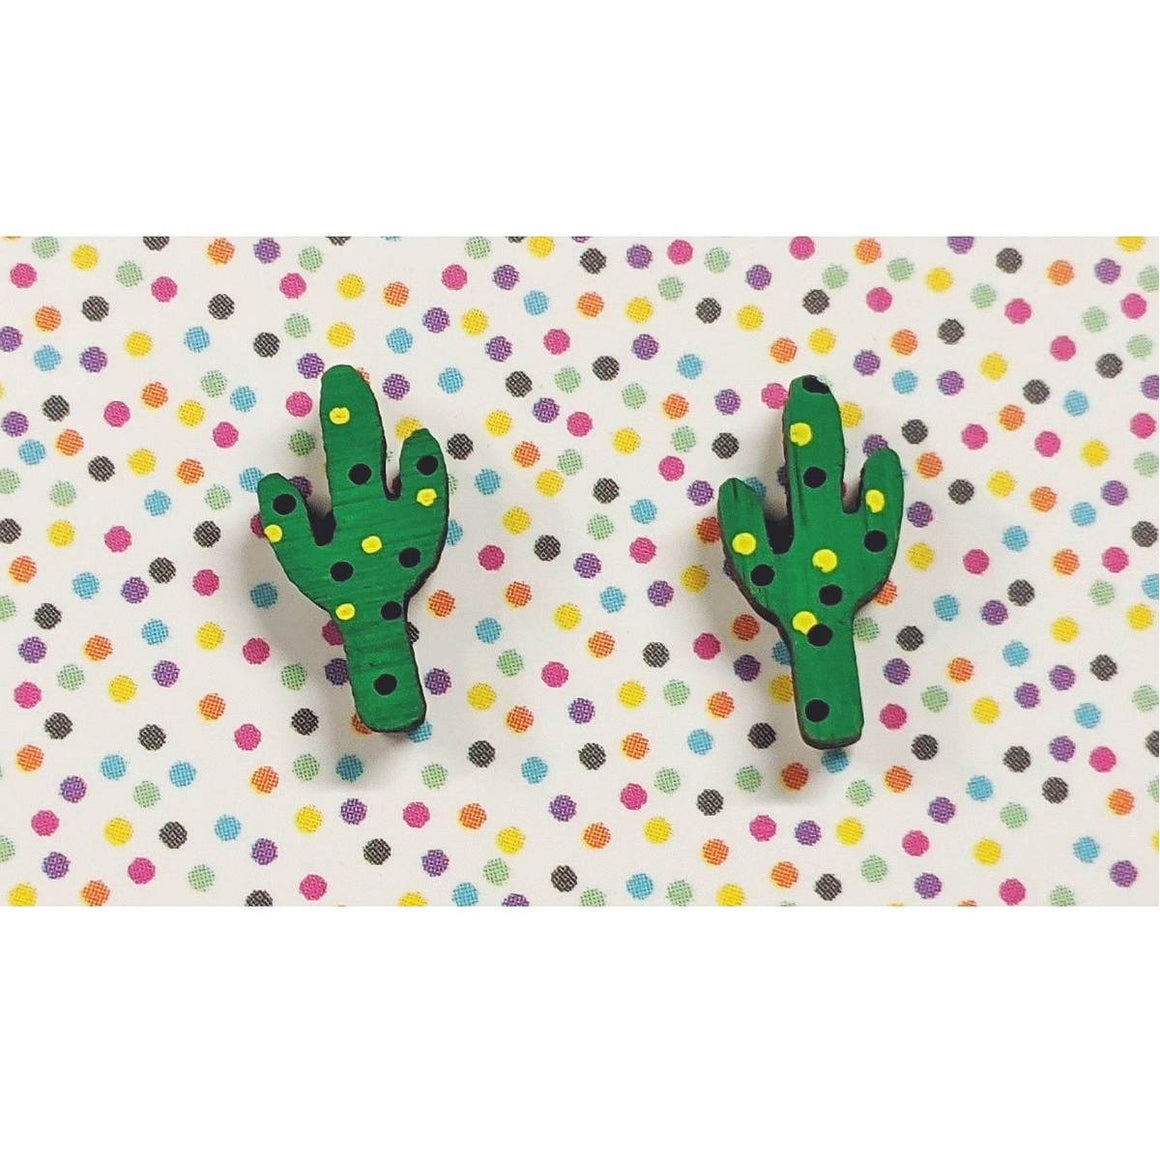 A pair of intricately hand coloured studs depicting green cactuses with black and yellow dots.